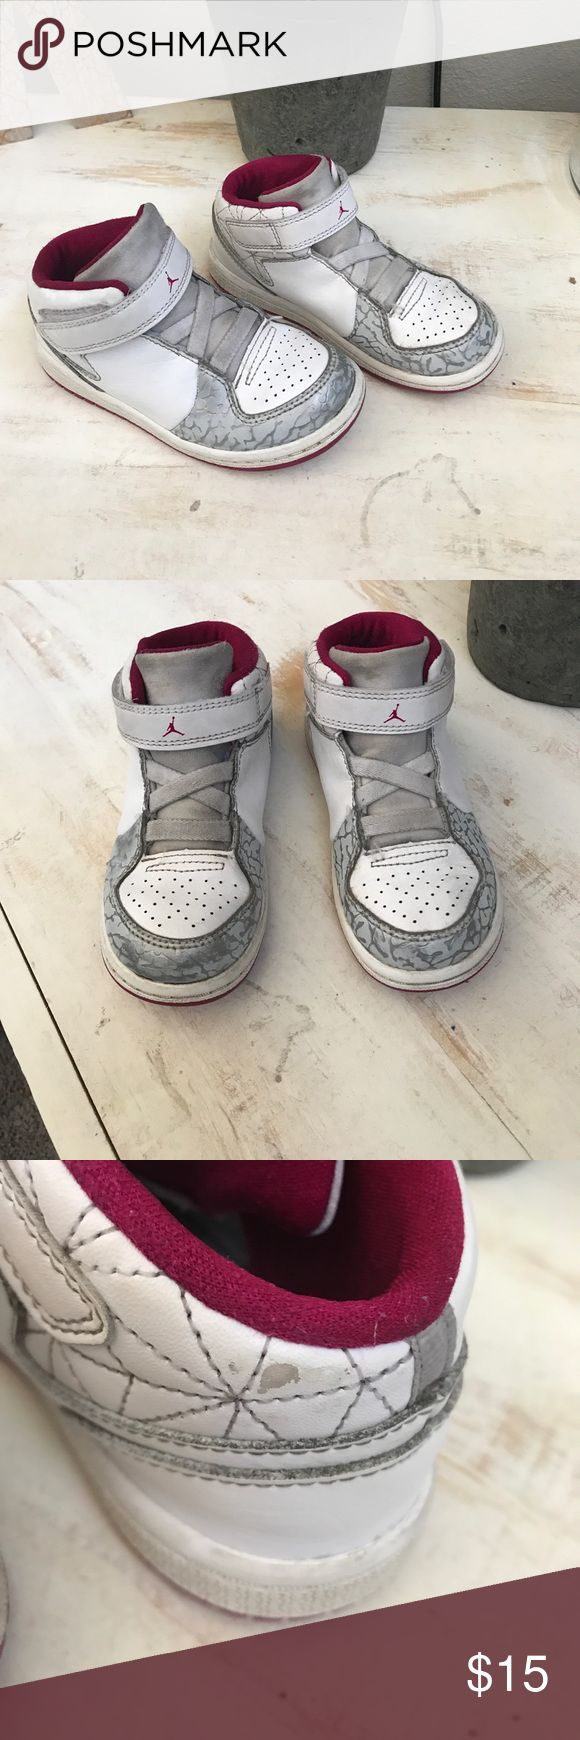 Size 9 Jordan flights ✨used little girls Jordan flights size 9 they have a little wear on one of the back part of the shoe as pictured make me an offer! Or bundle for the most savings 😉✨ Jordan Shoes Sneakers